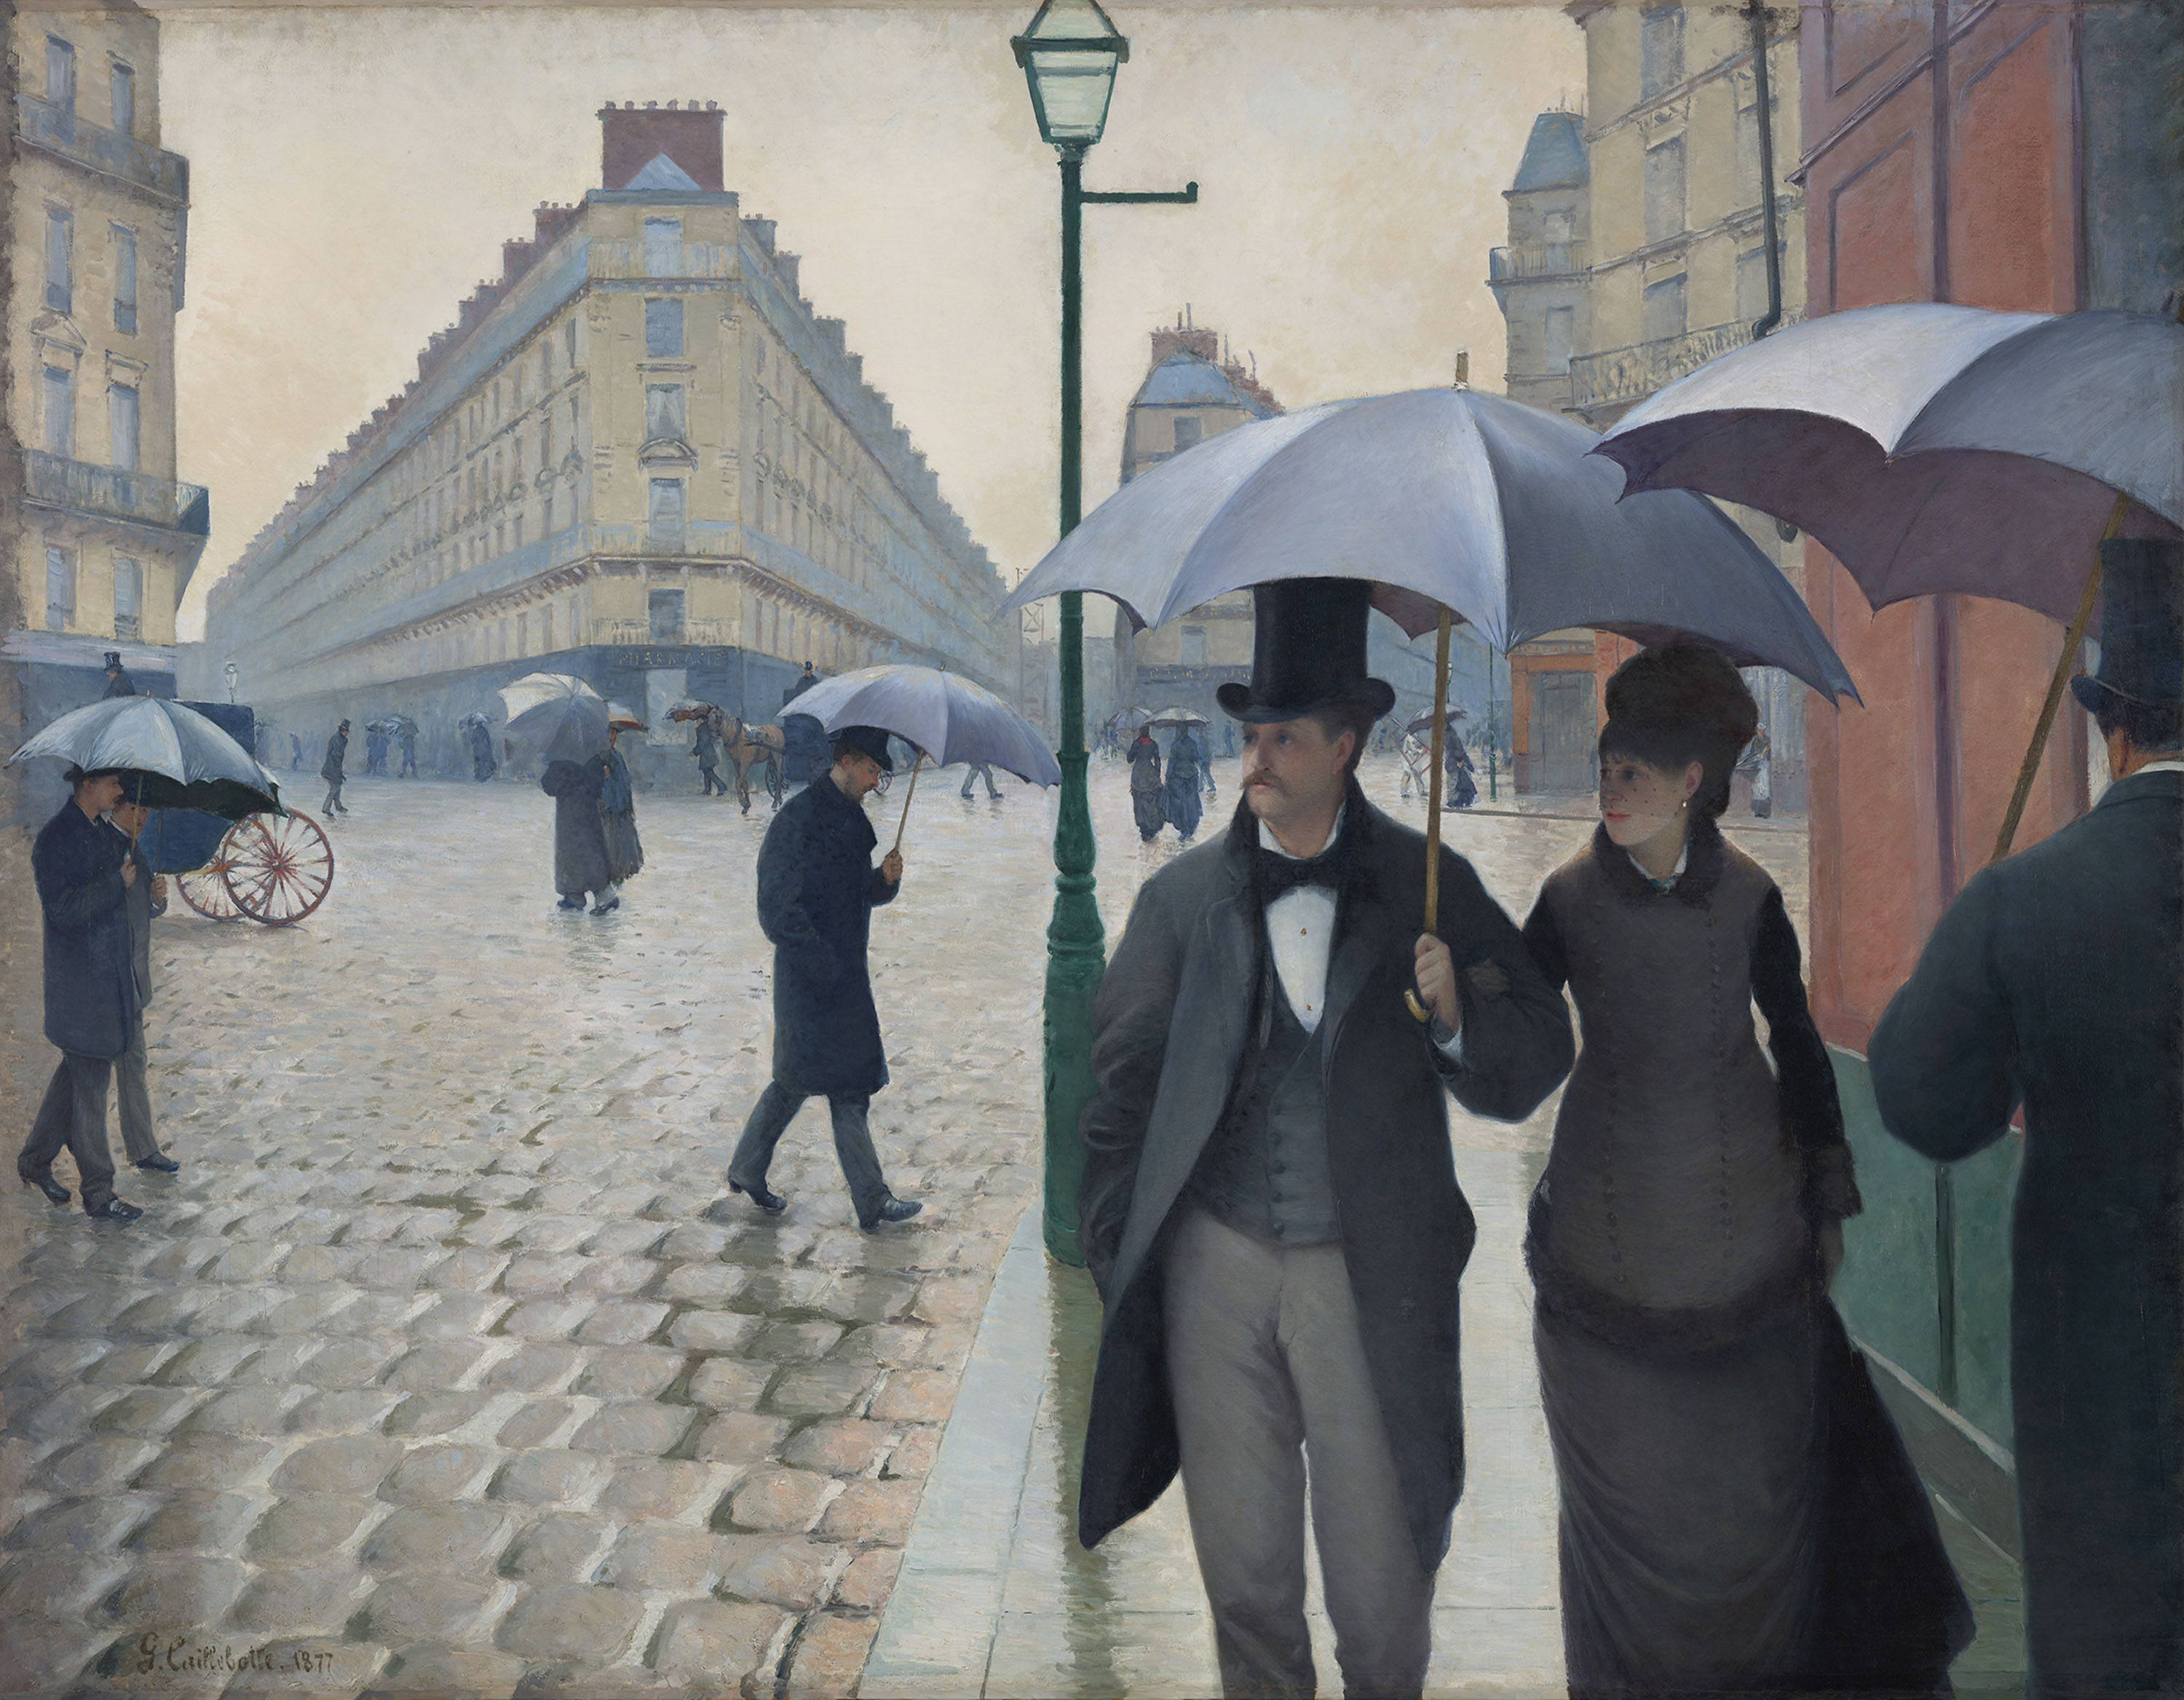 Paris Street, Rainy Day, 1877. Plunging perspectives and sliced figures suggest the aggressive angles of modernism to come.